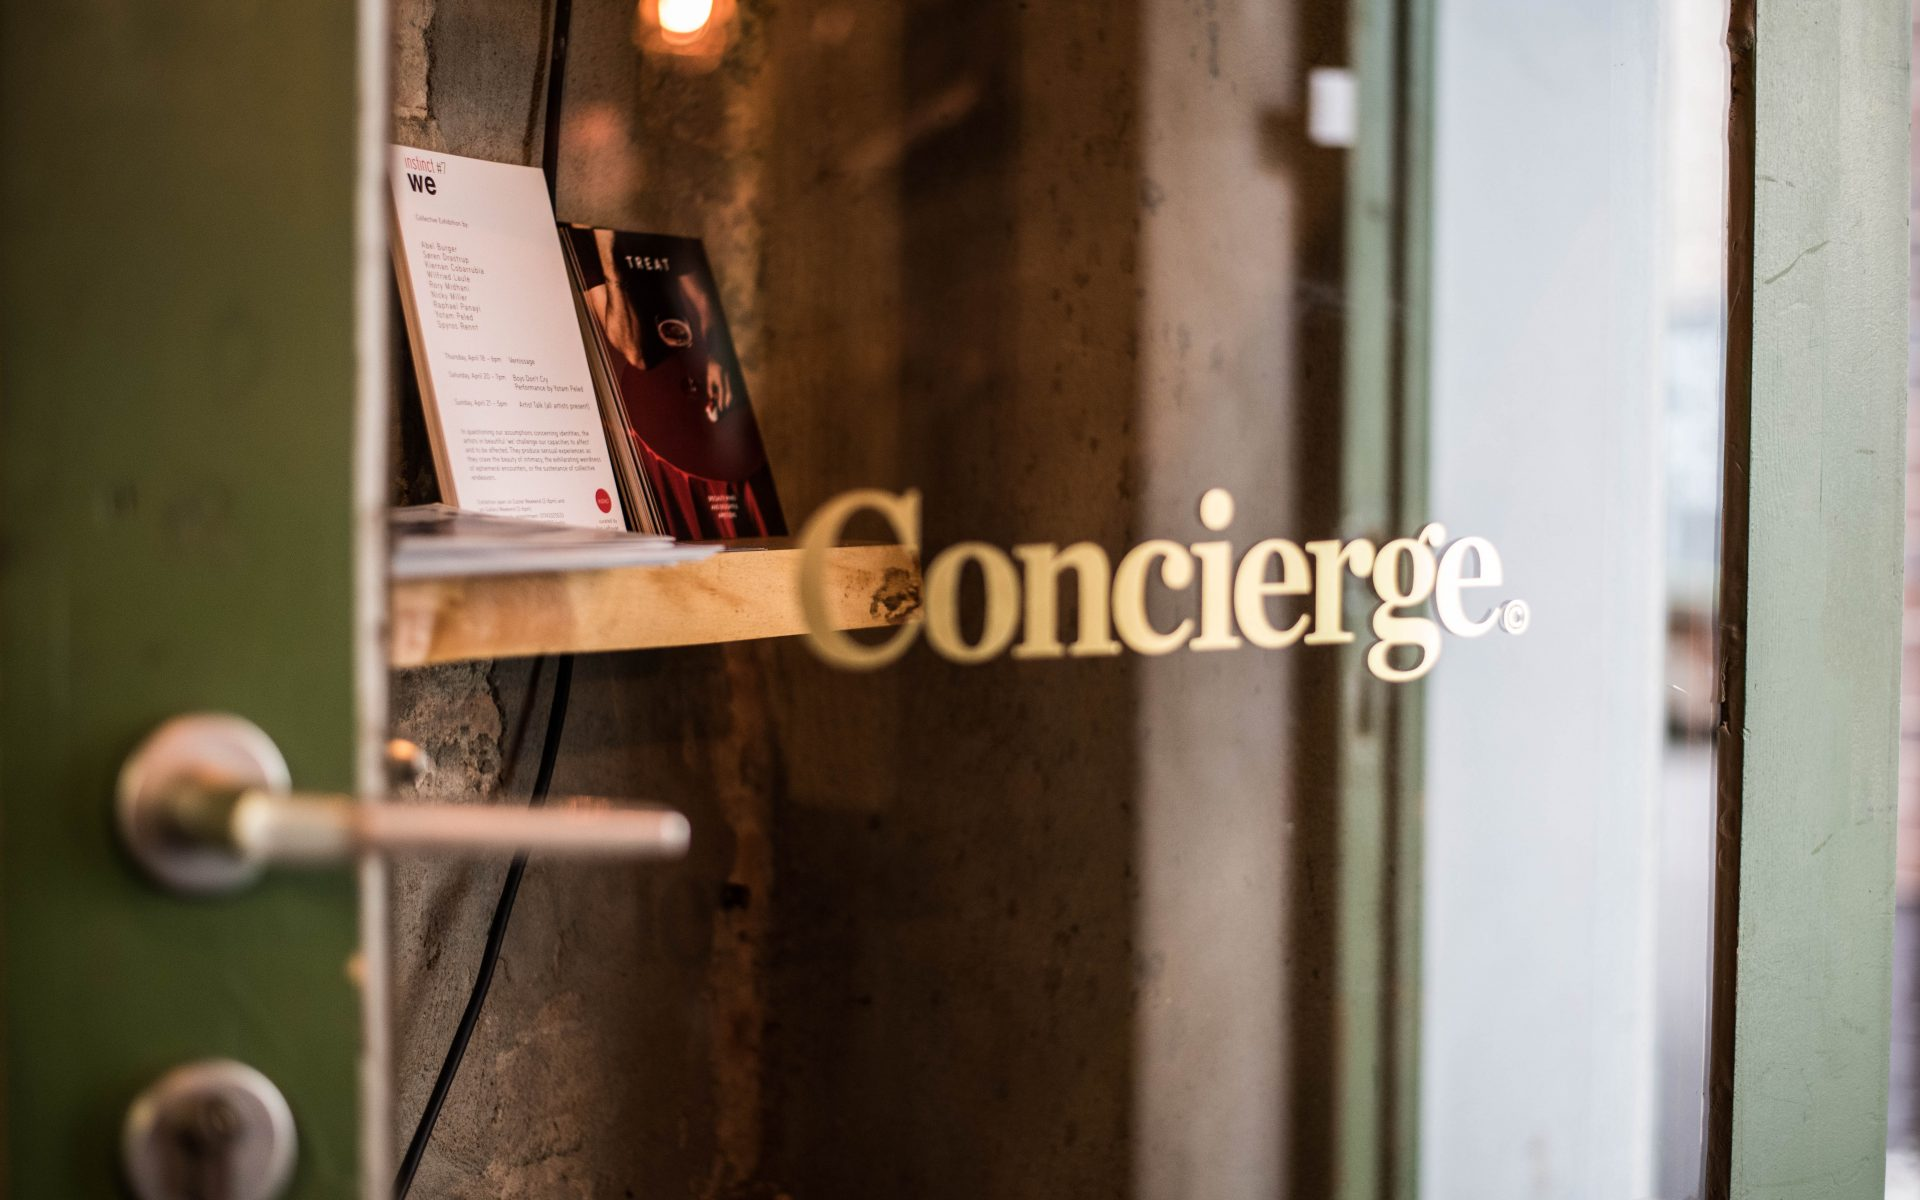 Concierge Coffee Berlijn